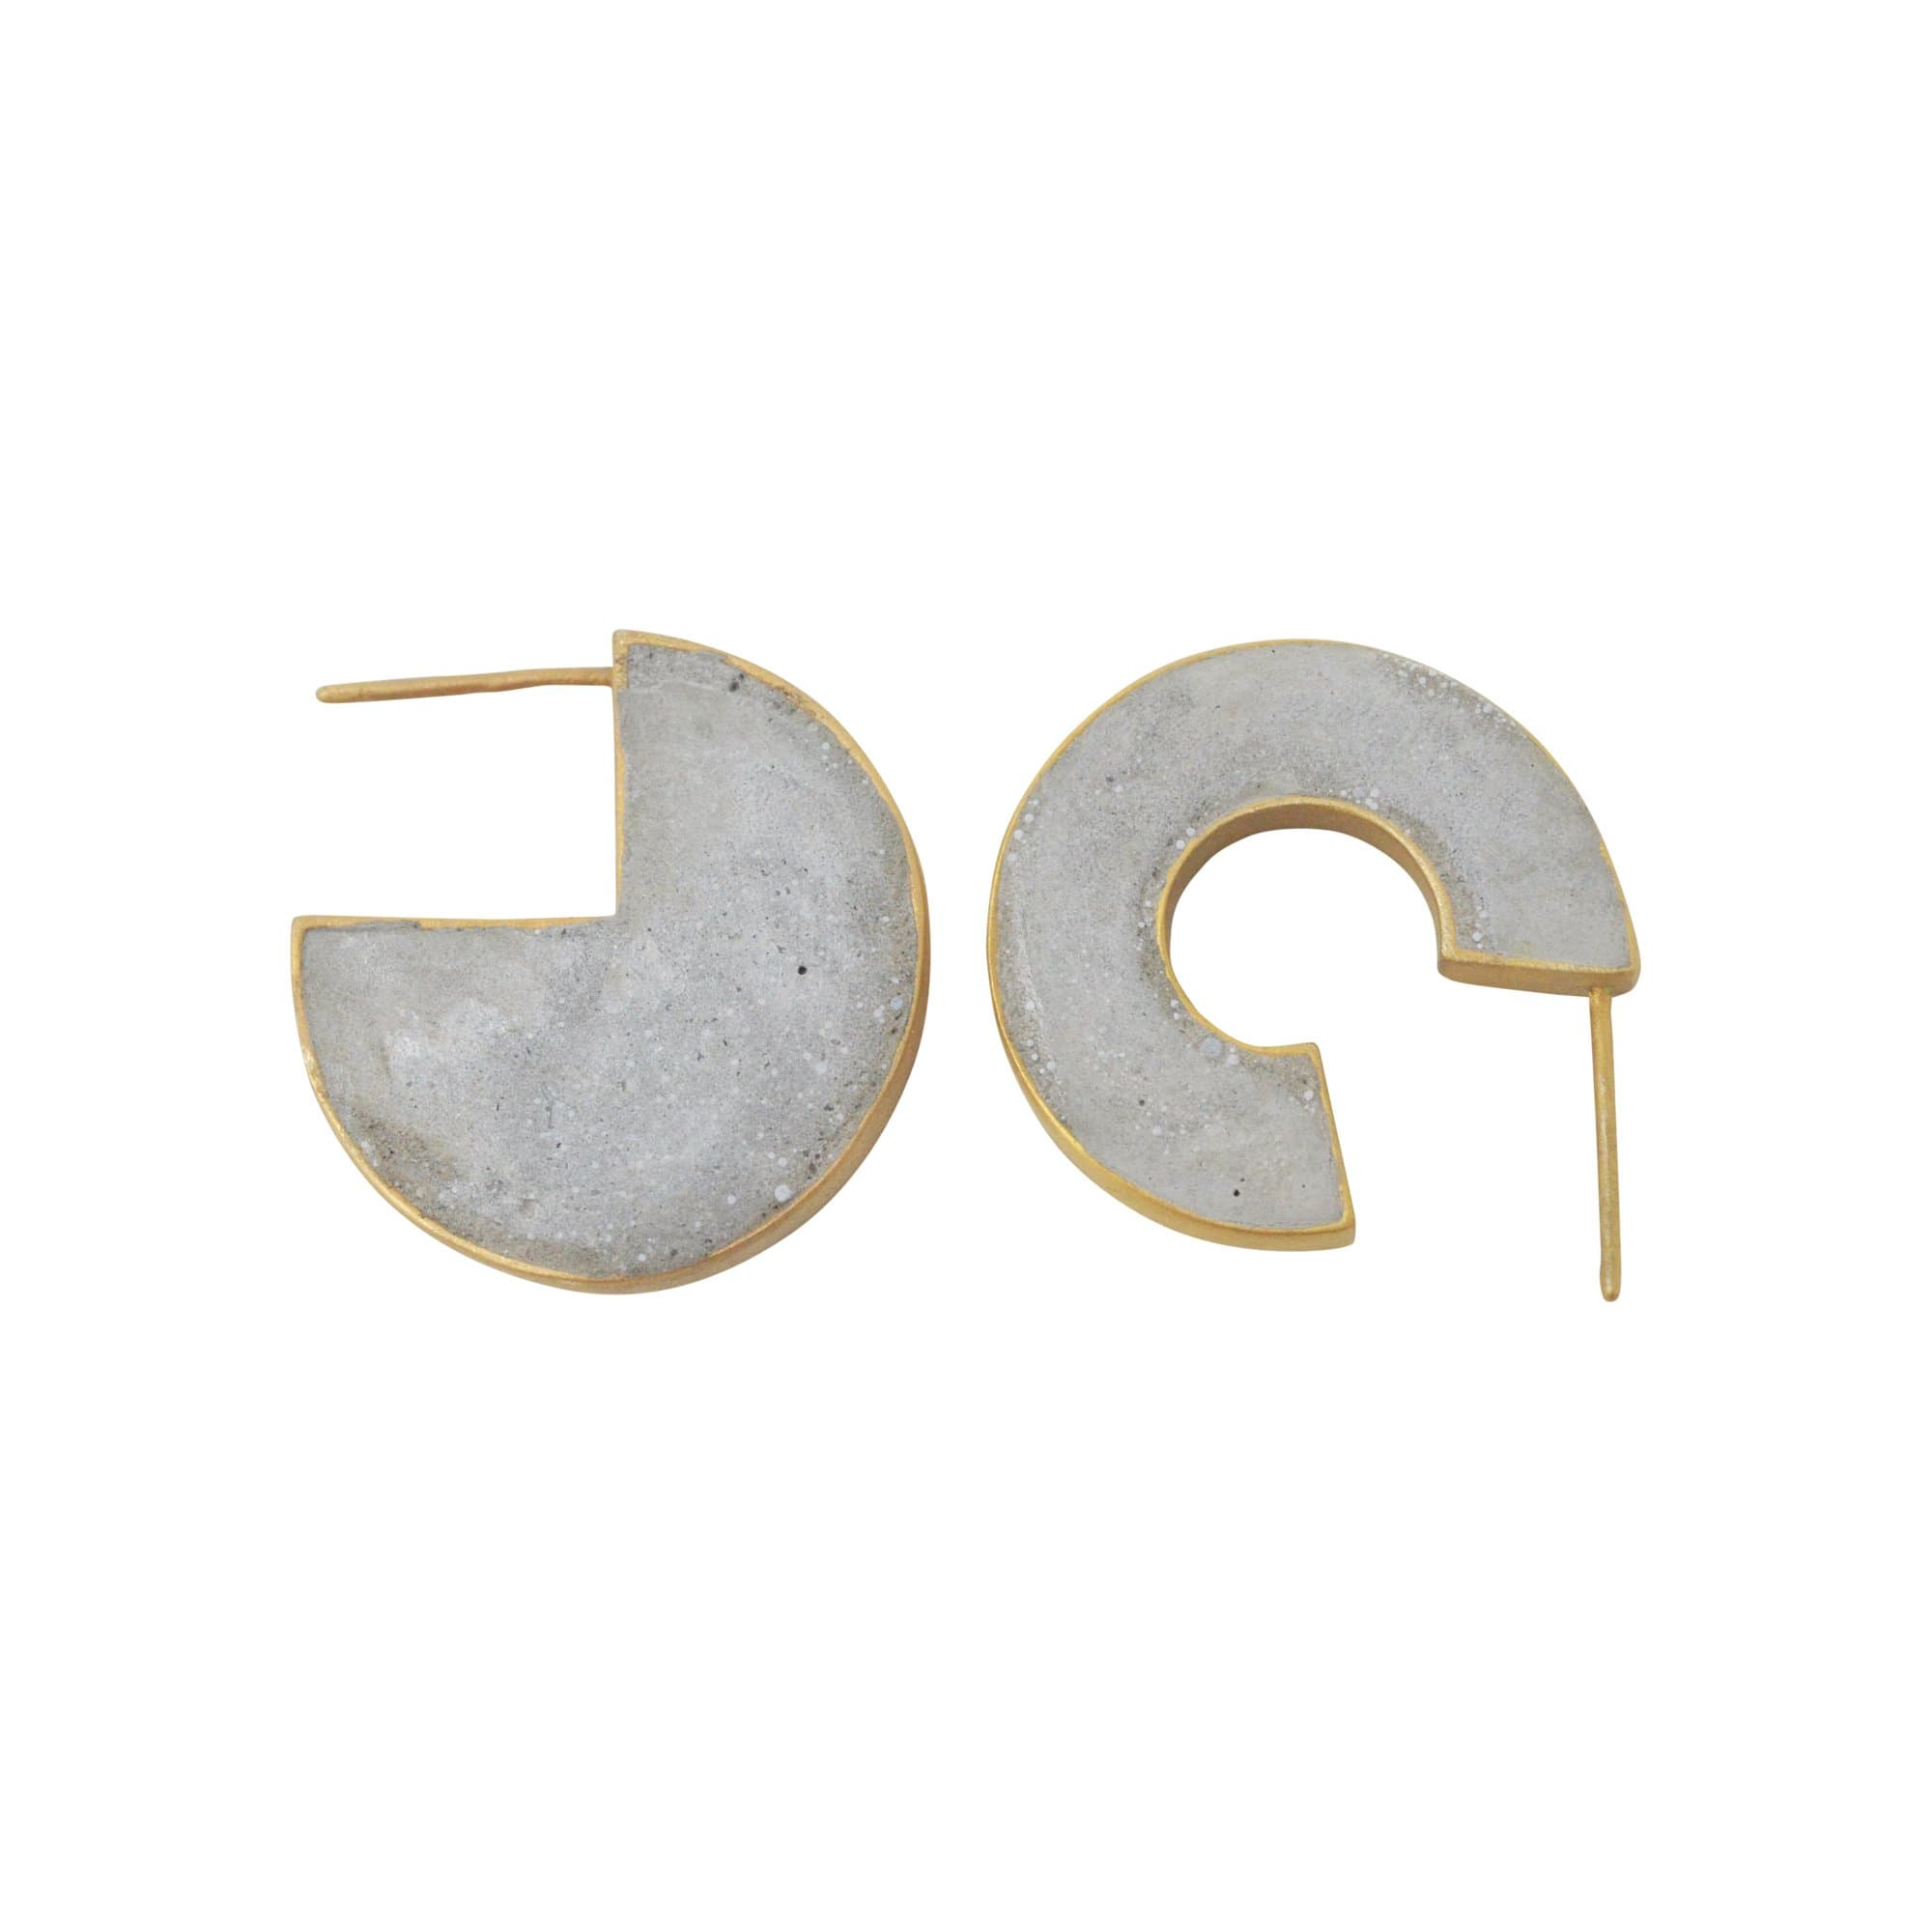 Lily Toya Earrings 14K gold-plated brass 3/4 Concrete Earrings